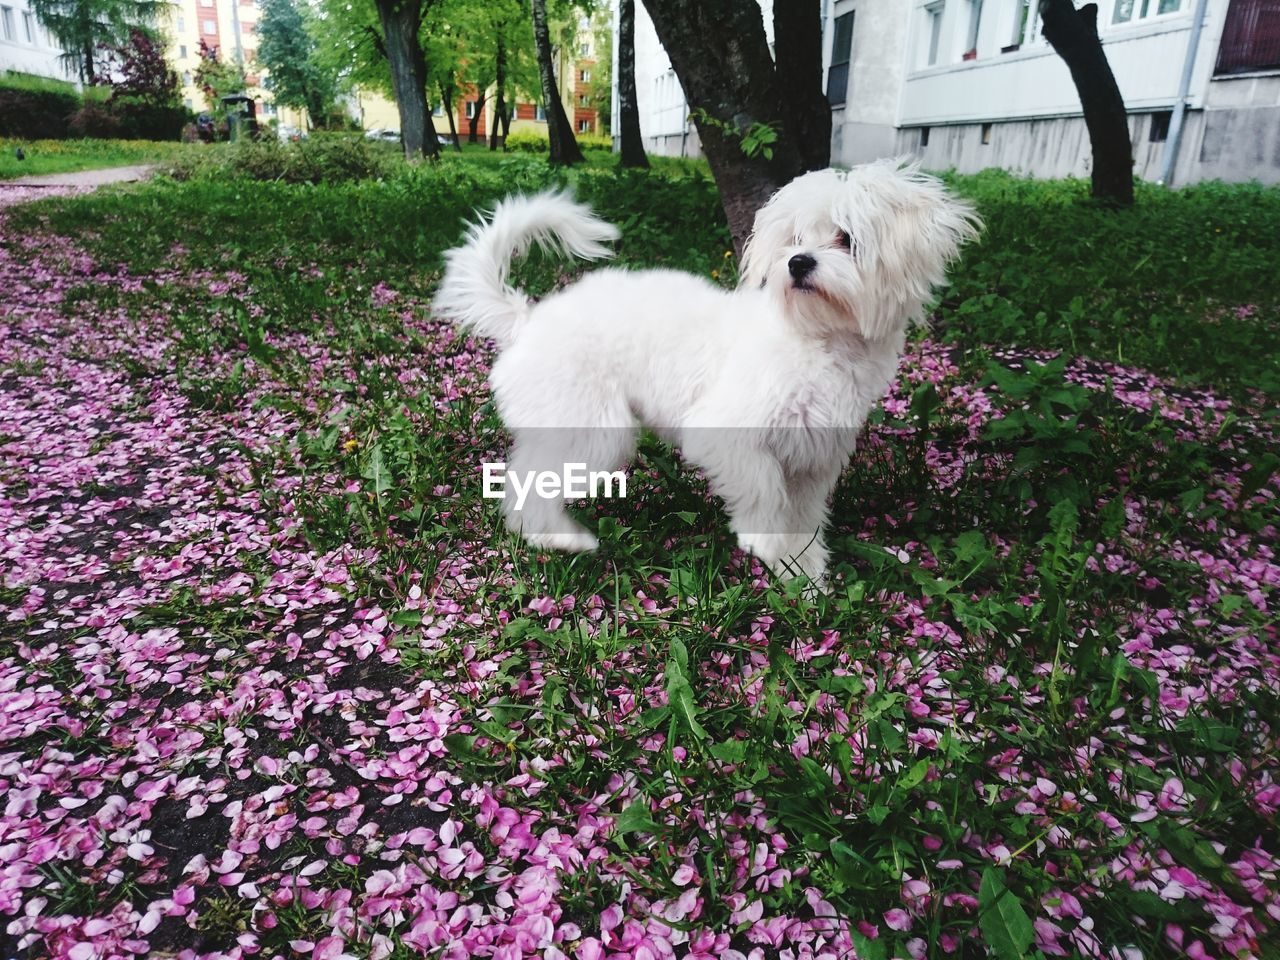 flower, dog, pets, domestic animals, one animal, animal themes, white color, nature, no people, growth, day, outdoors, mammal, beauty in nature, close-up